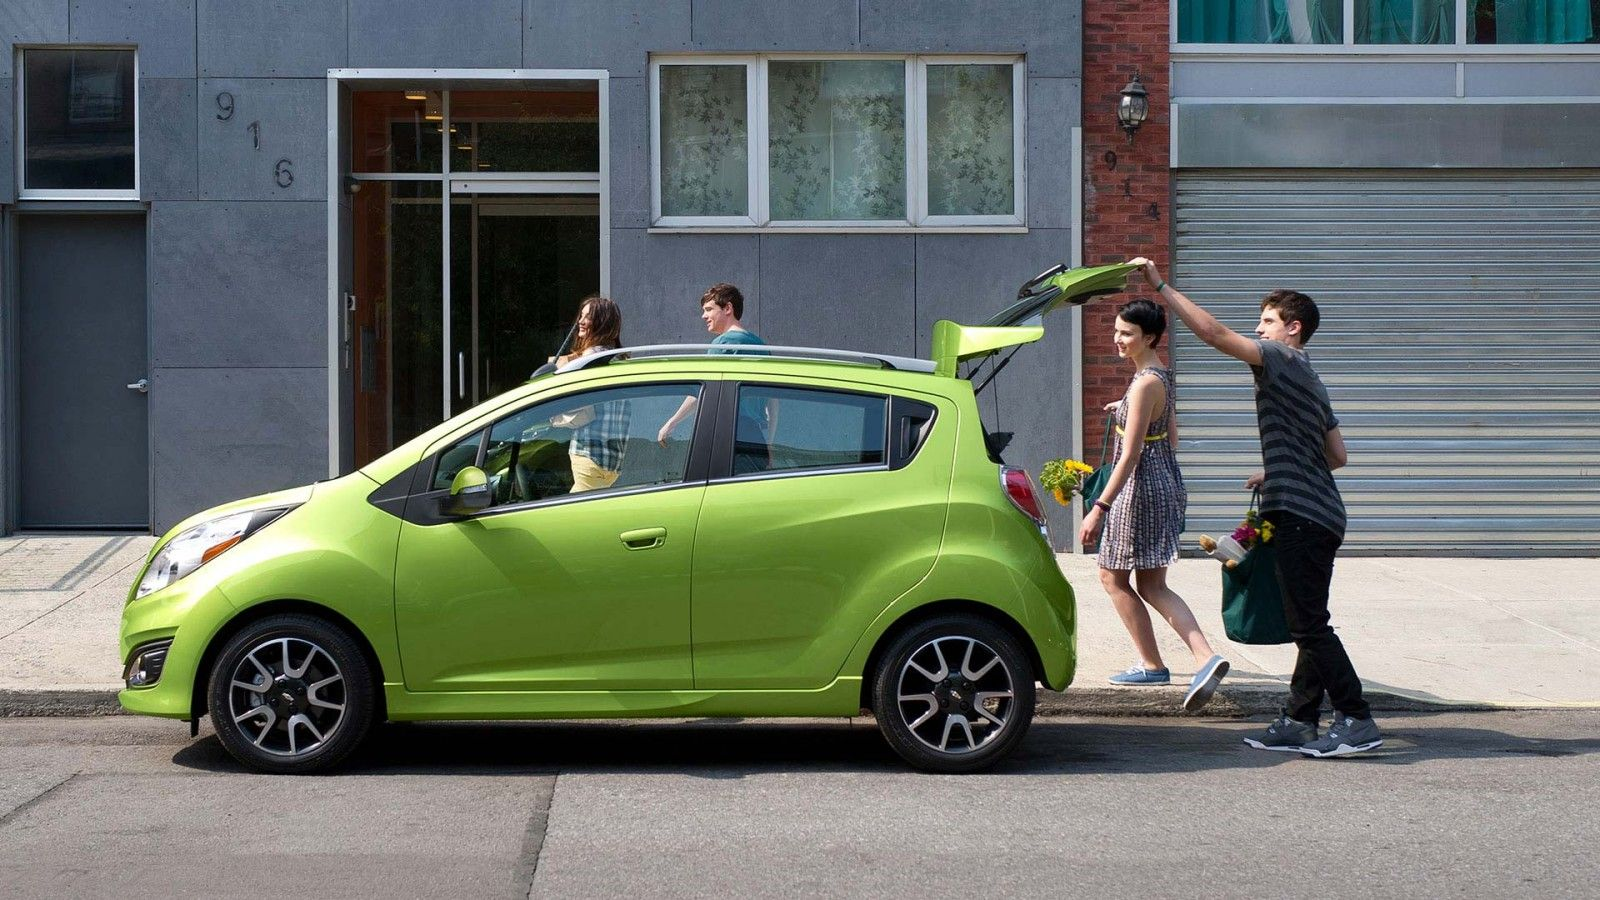 2015 Spark Fuel Efficient Car Exterior Pictures Chevrolet Spark